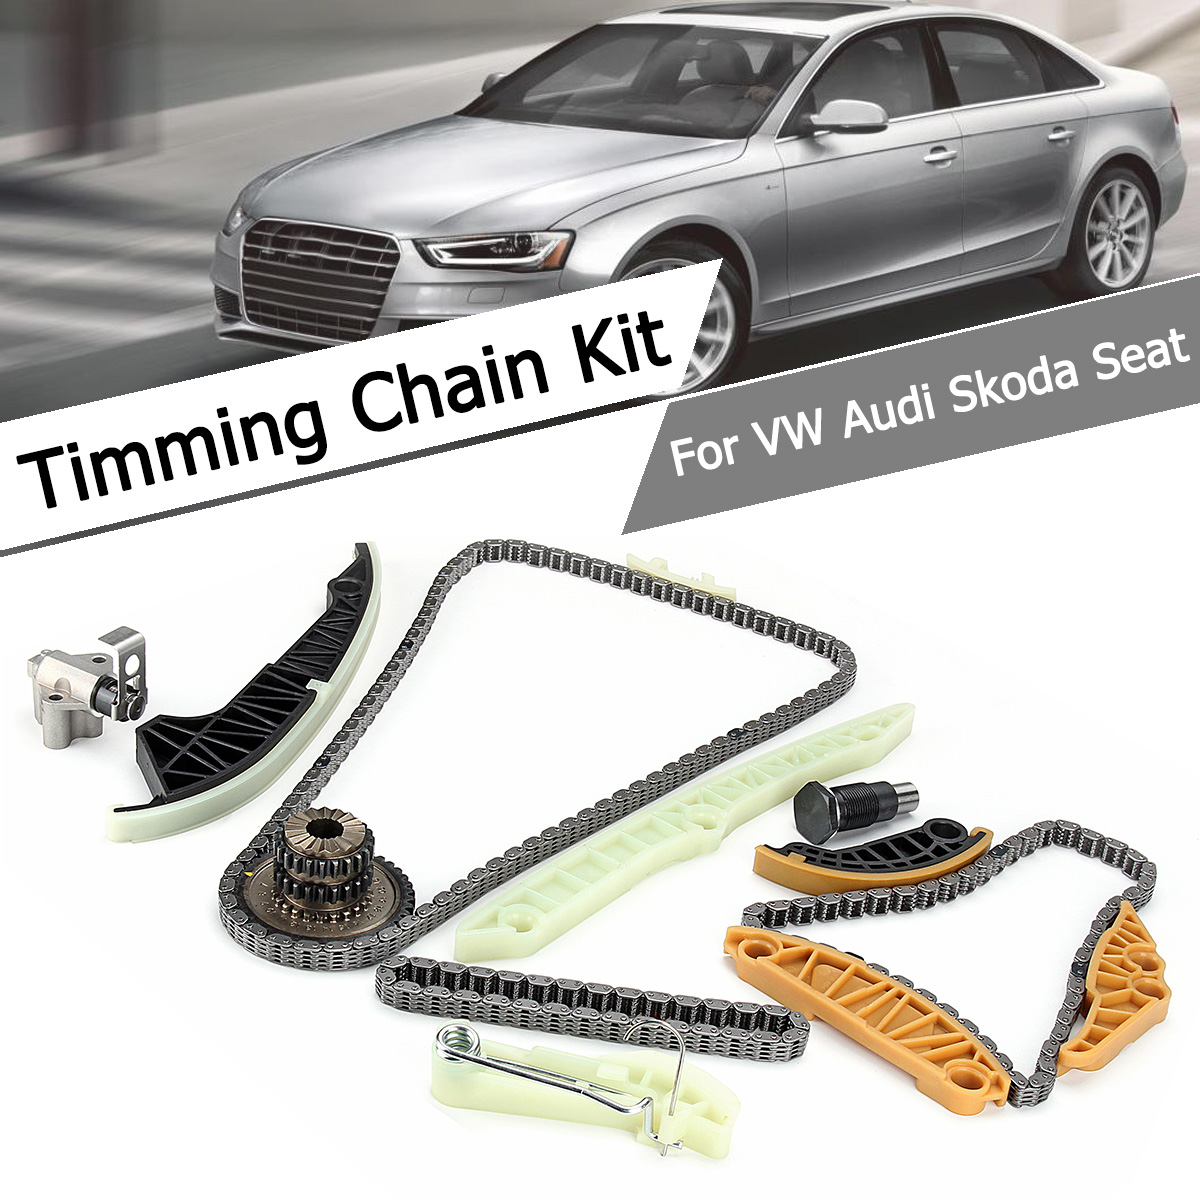 1.8T/2.0T Car Engine Timing Chain Tensioner Repair Kit For Audi A3 A4 A5 A6 Q5 /VW Golf Tiguan Jetta CC Passat B6 EOS 06K109467K new timing chain kit 13 pcs for audi a3 a4 a5 a6 q5 tt allroad vw beetle eos gti jetta passat b6 tiguan cc 06k109158a 06k109467k